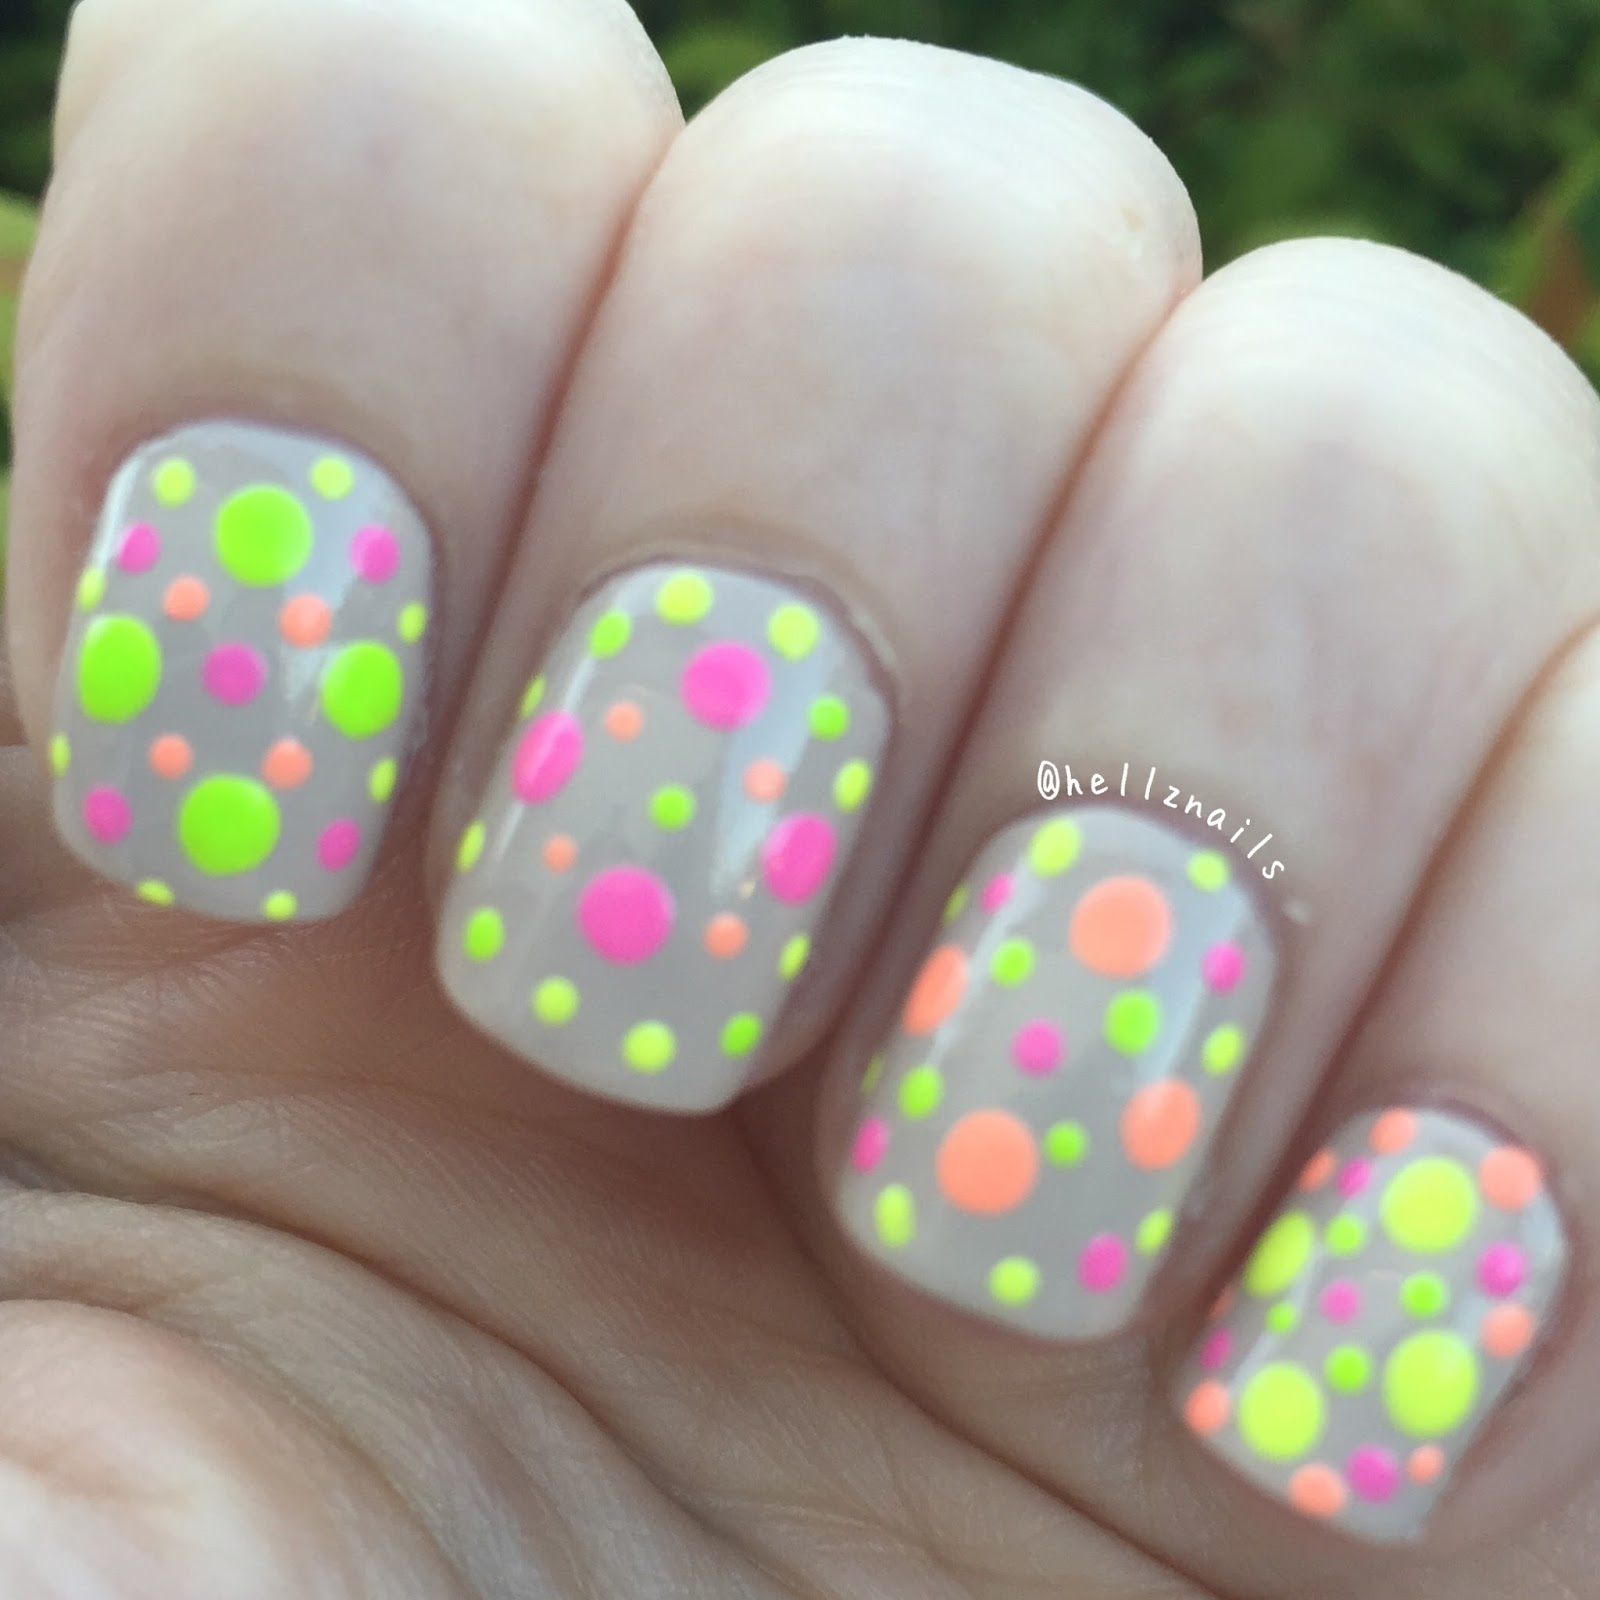 Hpb presents neutrals and neons linky hellz nails nude and neon dotticure nail art nails inc colville mews models own sun hat prinsesfo Gallery